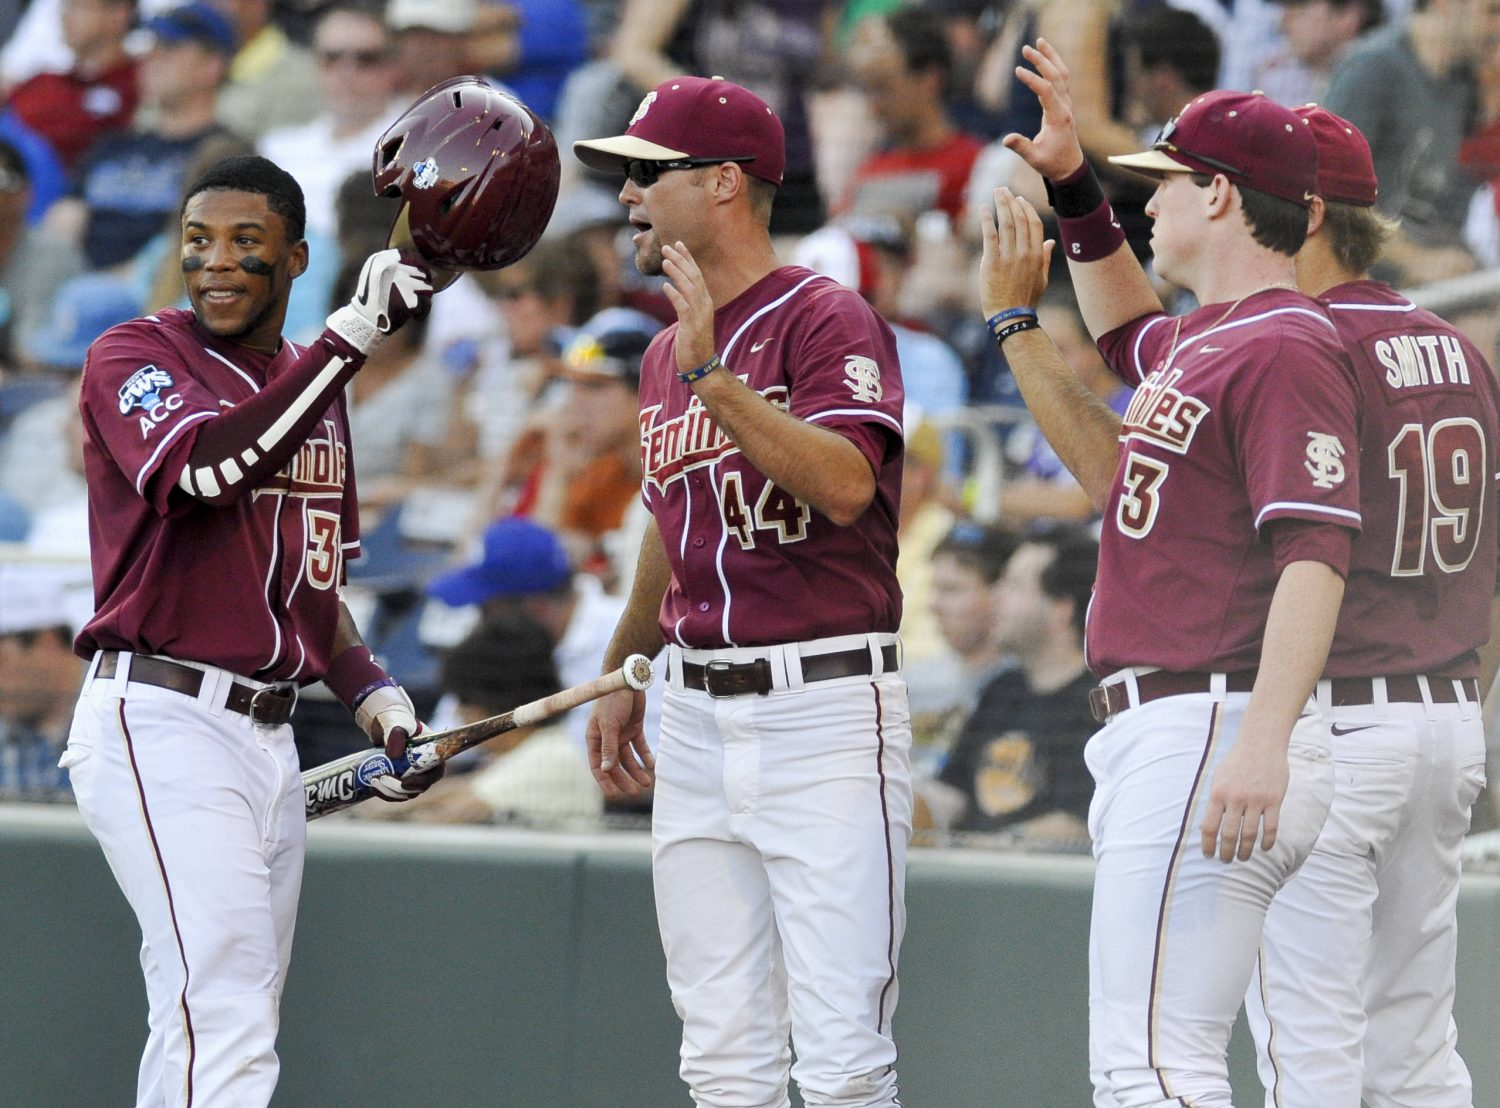 Florida State's Sherman Johnson, left, is greeted at the dugout by teammate Mack Waugh (44) after he scored against UCLA on a walk by Stephen McGee with bases loaded, in the first inning. (AP Photo/Eric Francis)